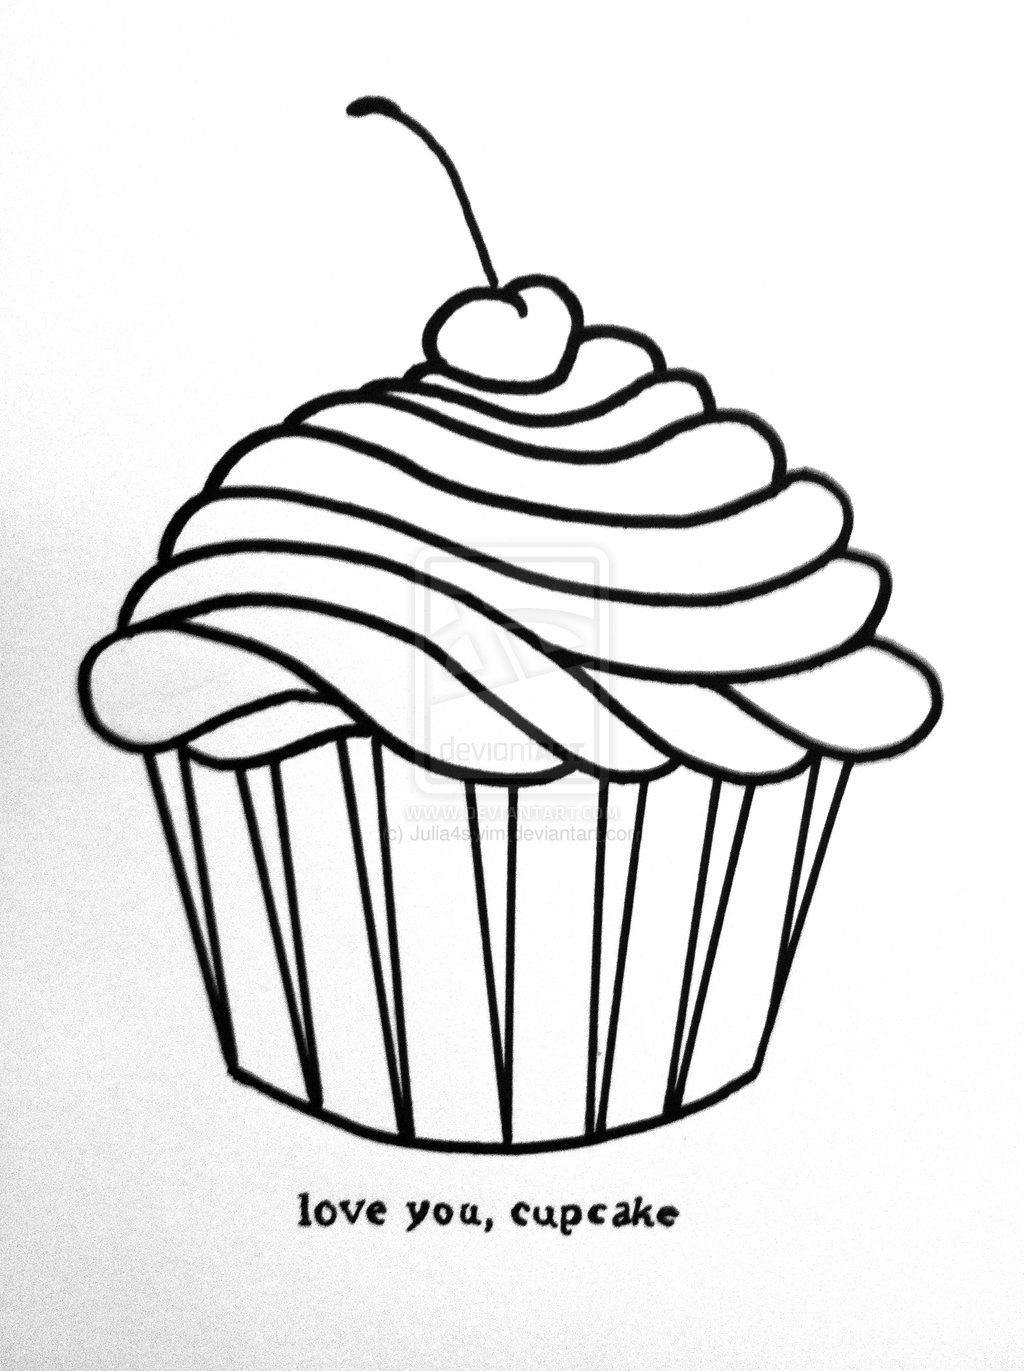 Cupcake Coloring Pages Simple : How To Draw A Cupcake - Cliparts.co